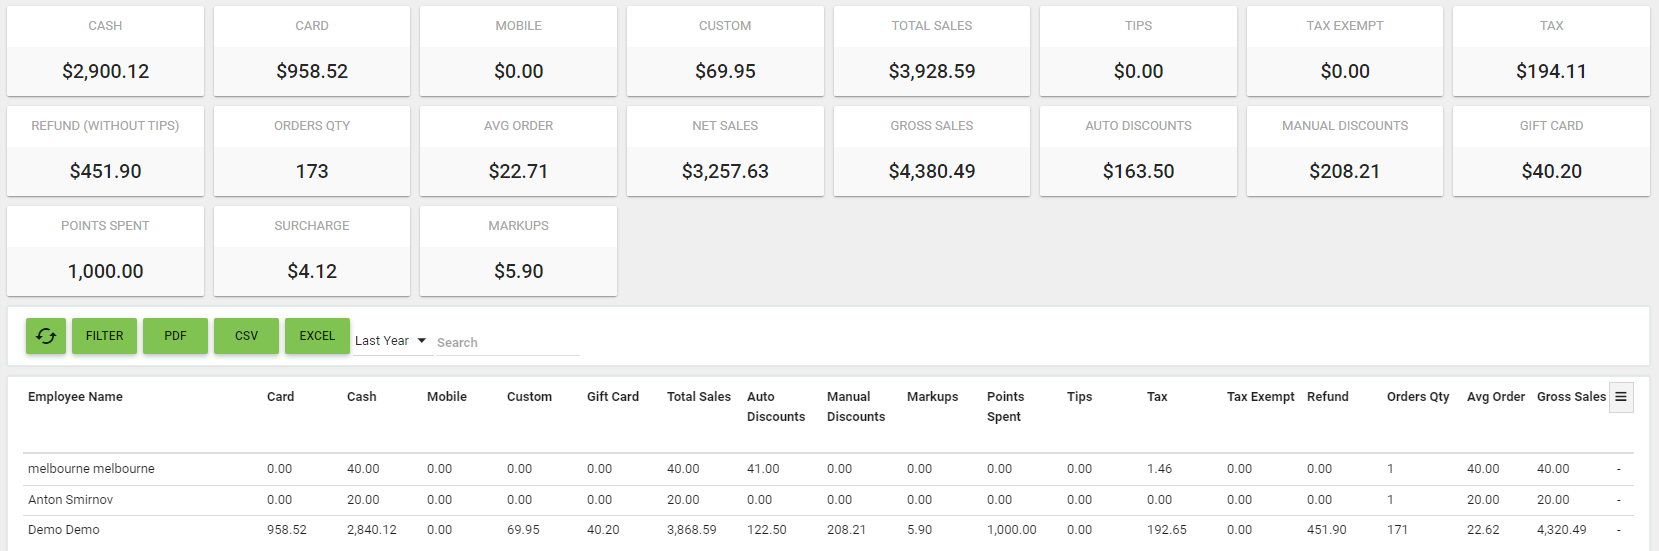 Oscar Point of Sale - BOM - Reports - Sales by Employee